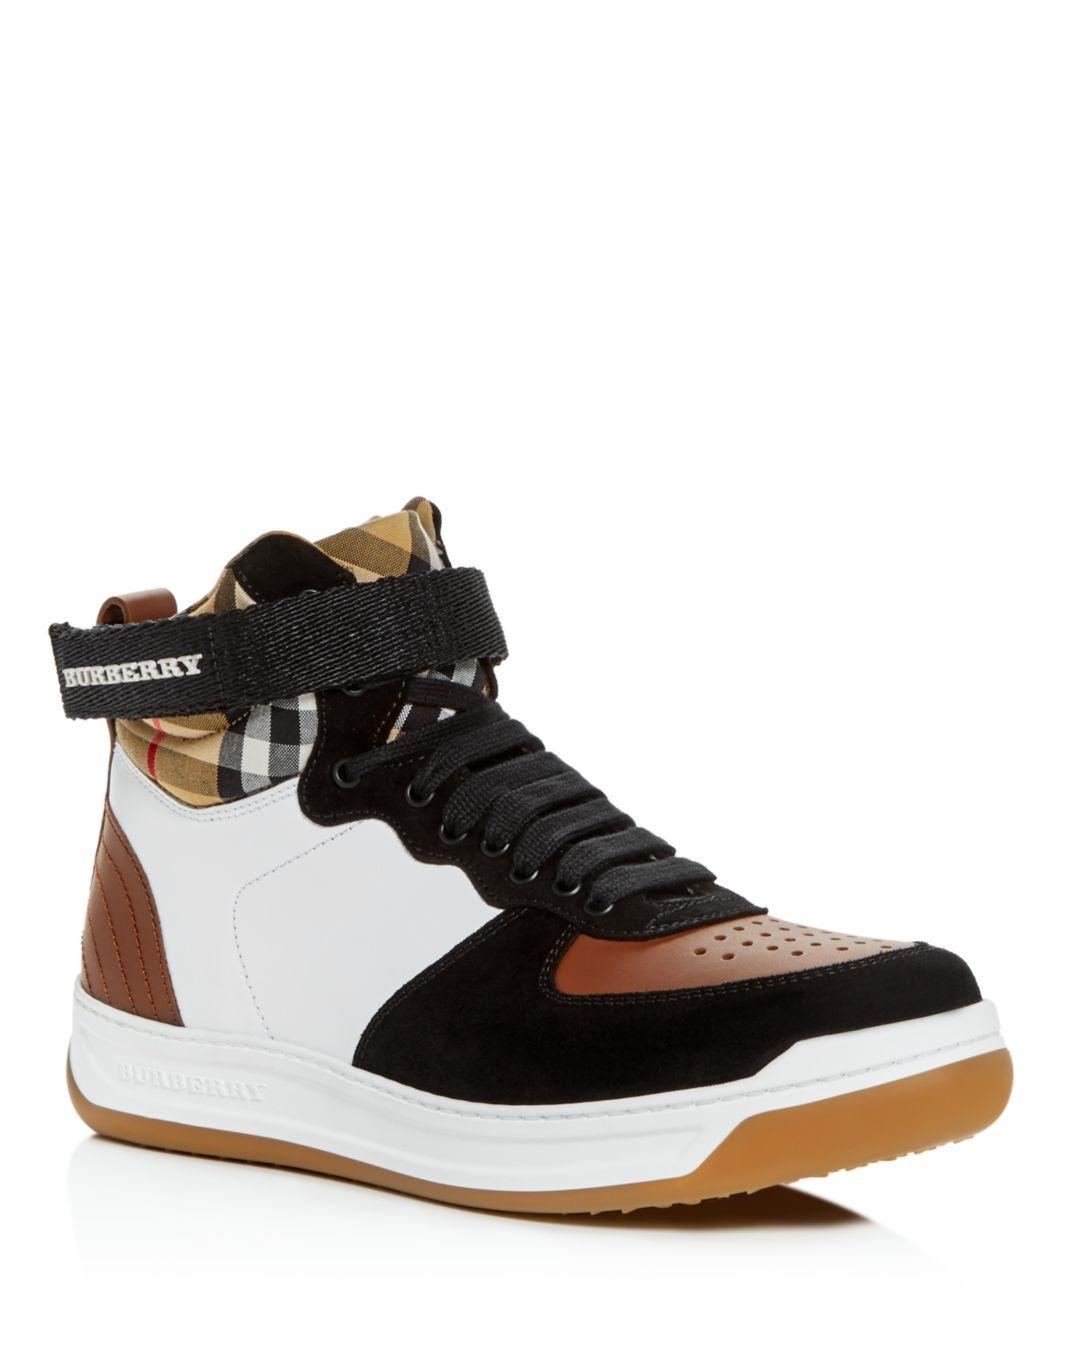 Burberry - Multicolor Women s Dennis Vintage Check High-top Sneakers -  Lyst. View fullscreen ace2df10cfc